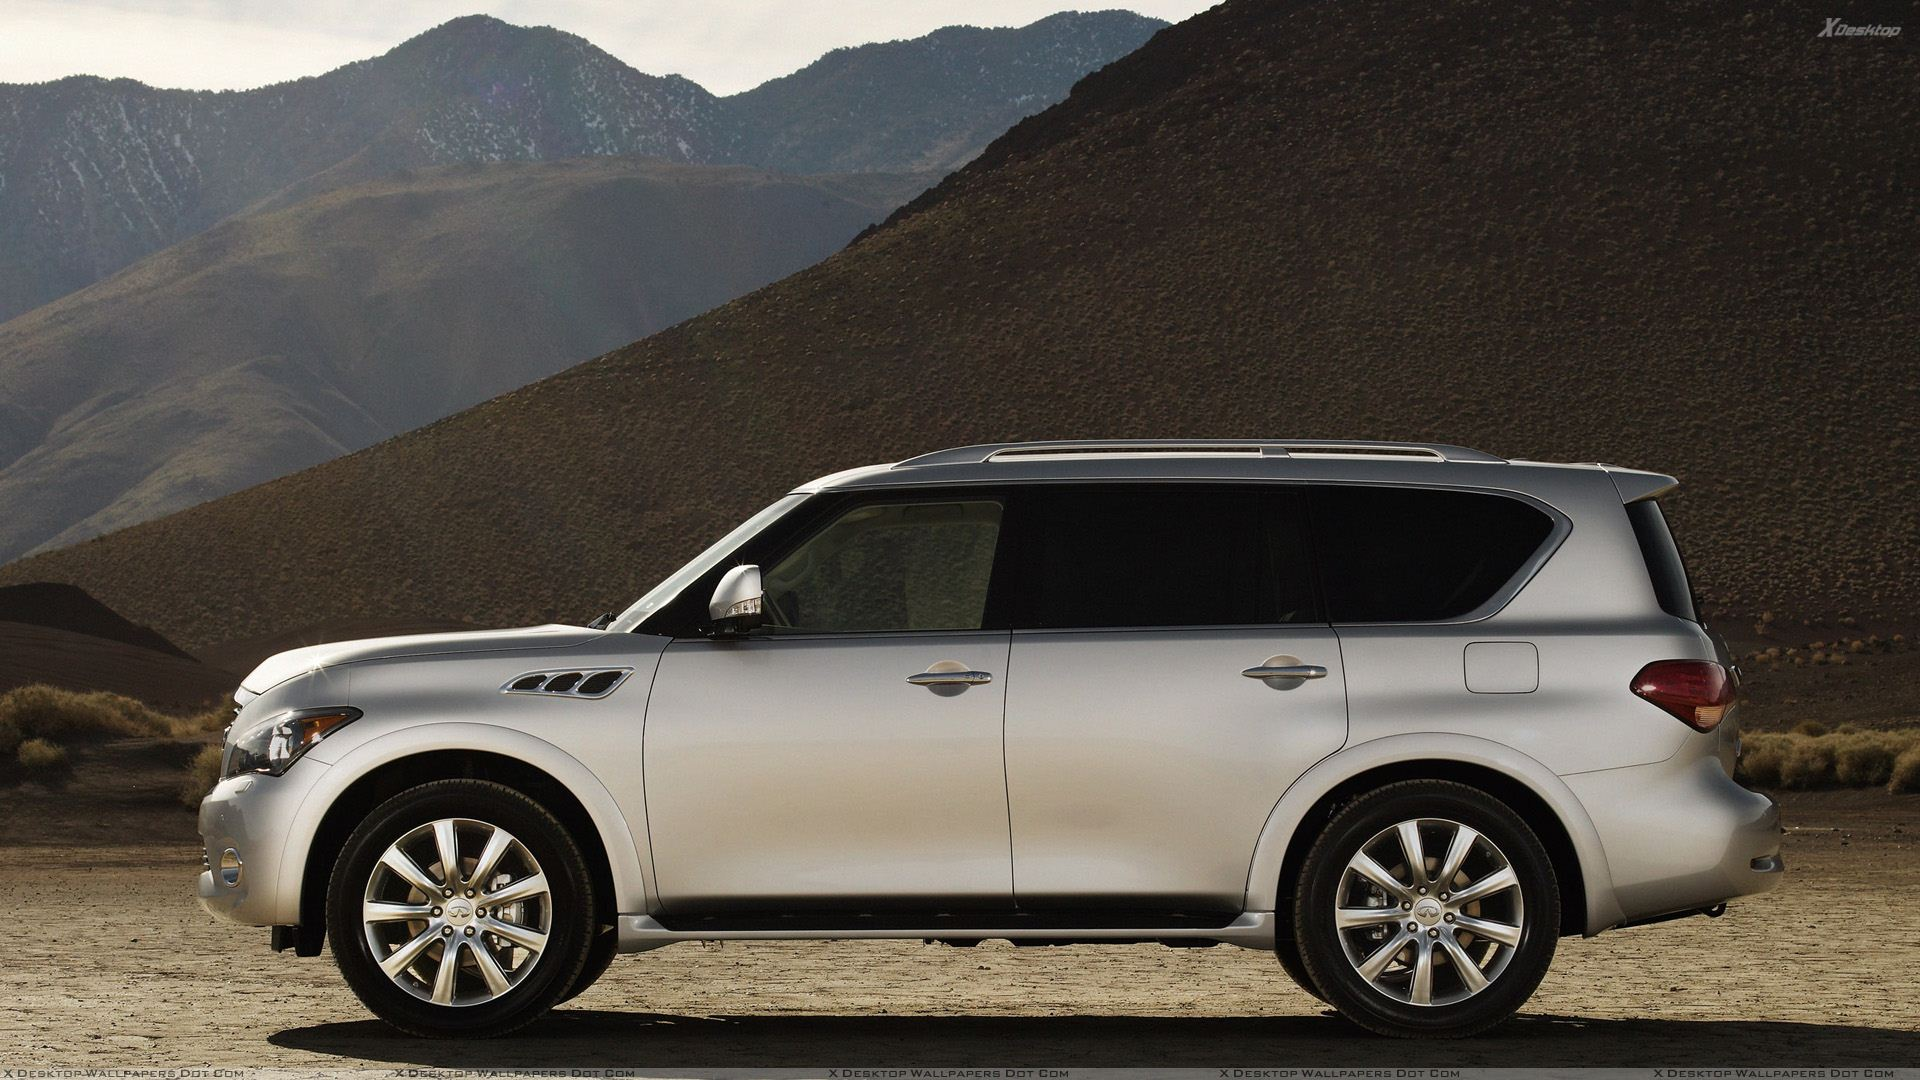 Side pose of 2011 infiniti qx56 in white near moutains wallpaper you are viewing wallpaper titled side pose of 2011 infiniti qx56 in white vanachro Image collections